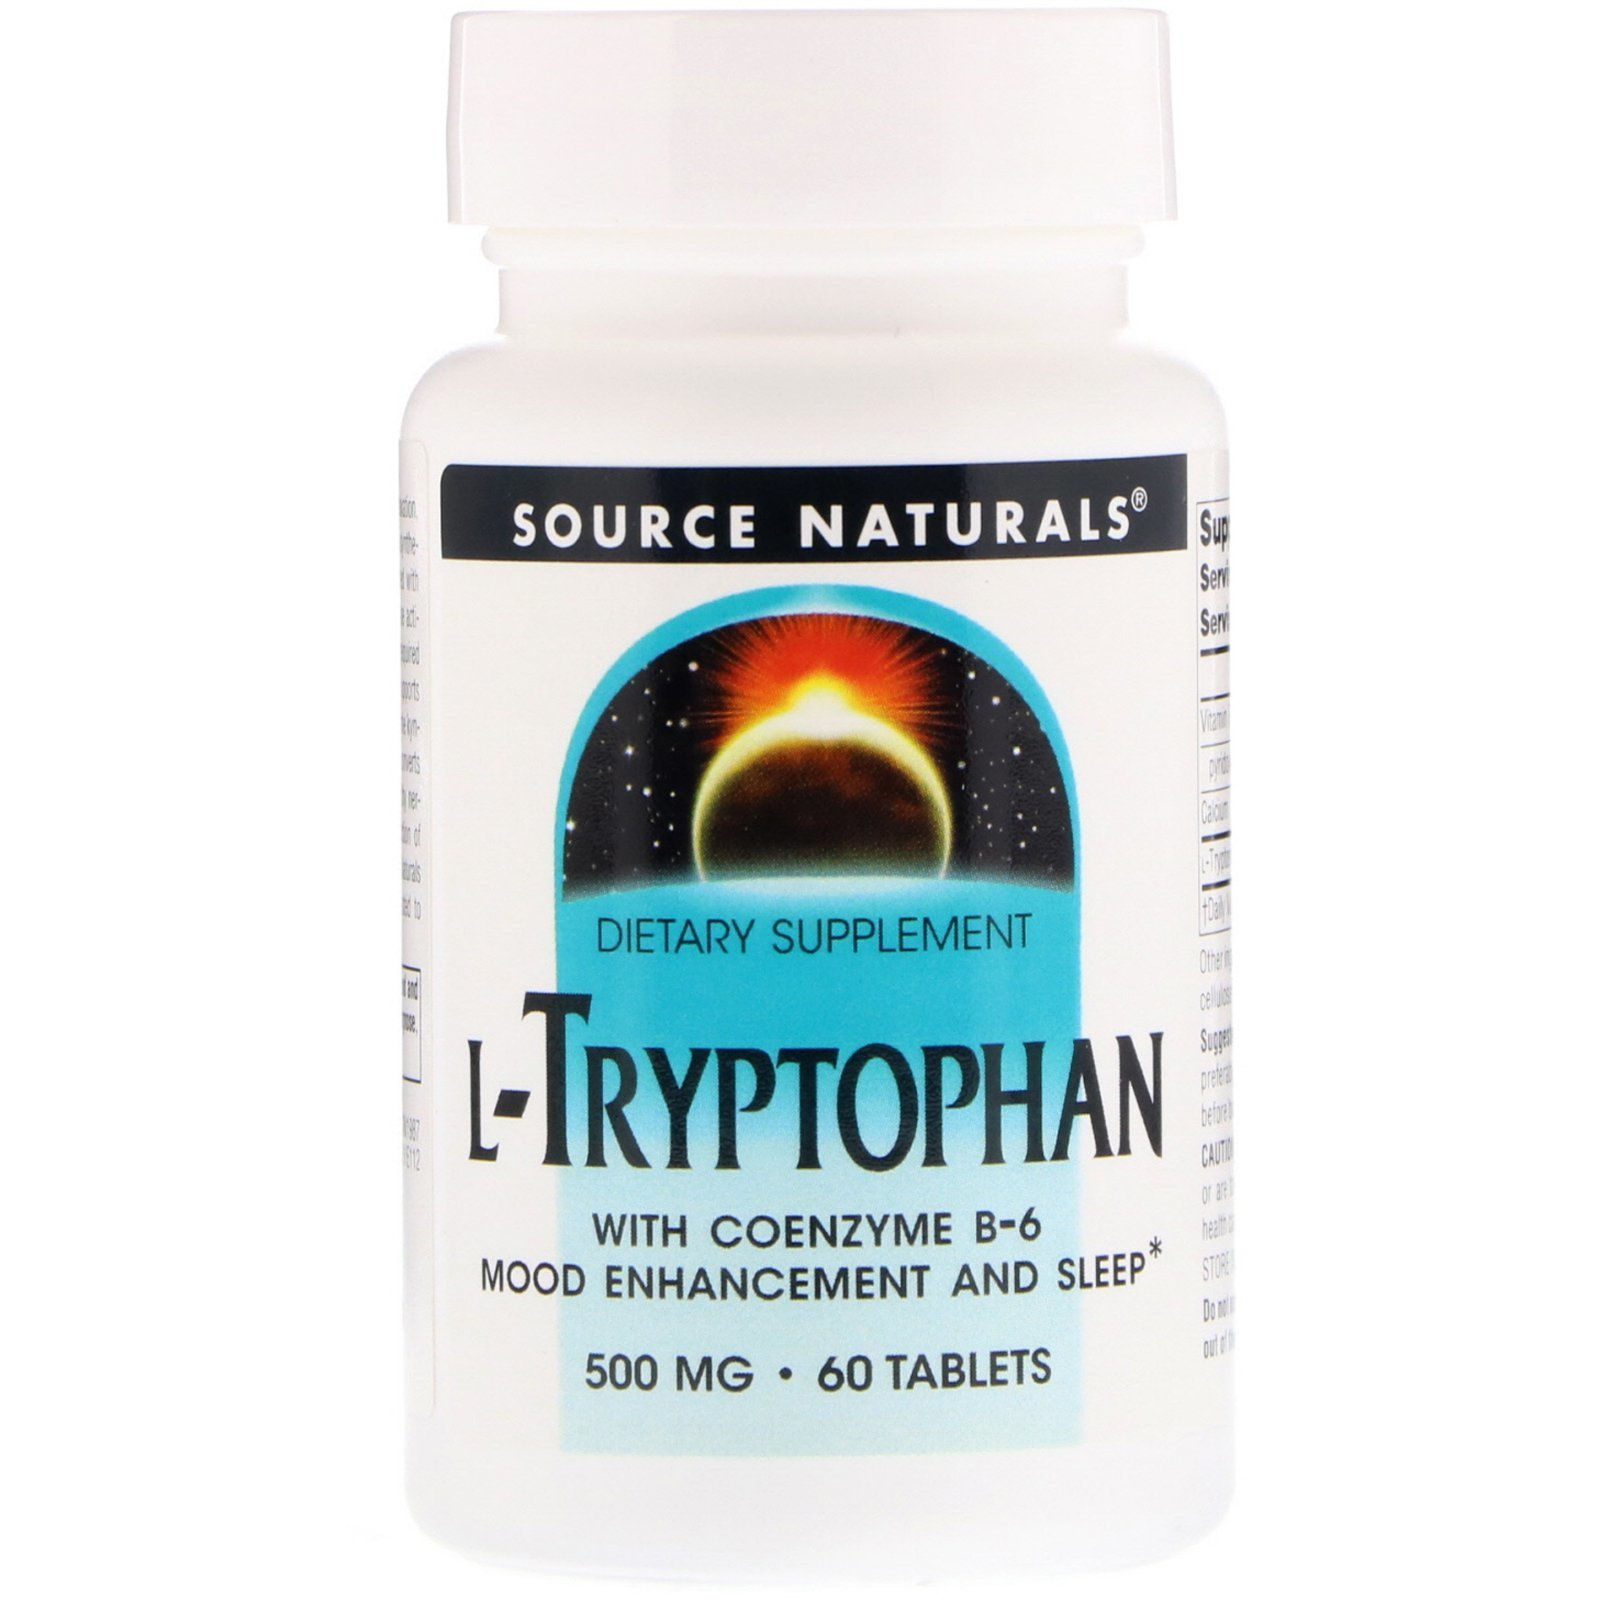 L-триптофан коферментной (L-Tryptophan with Coenzyme B-6), Source Naturals, 60 таблеток